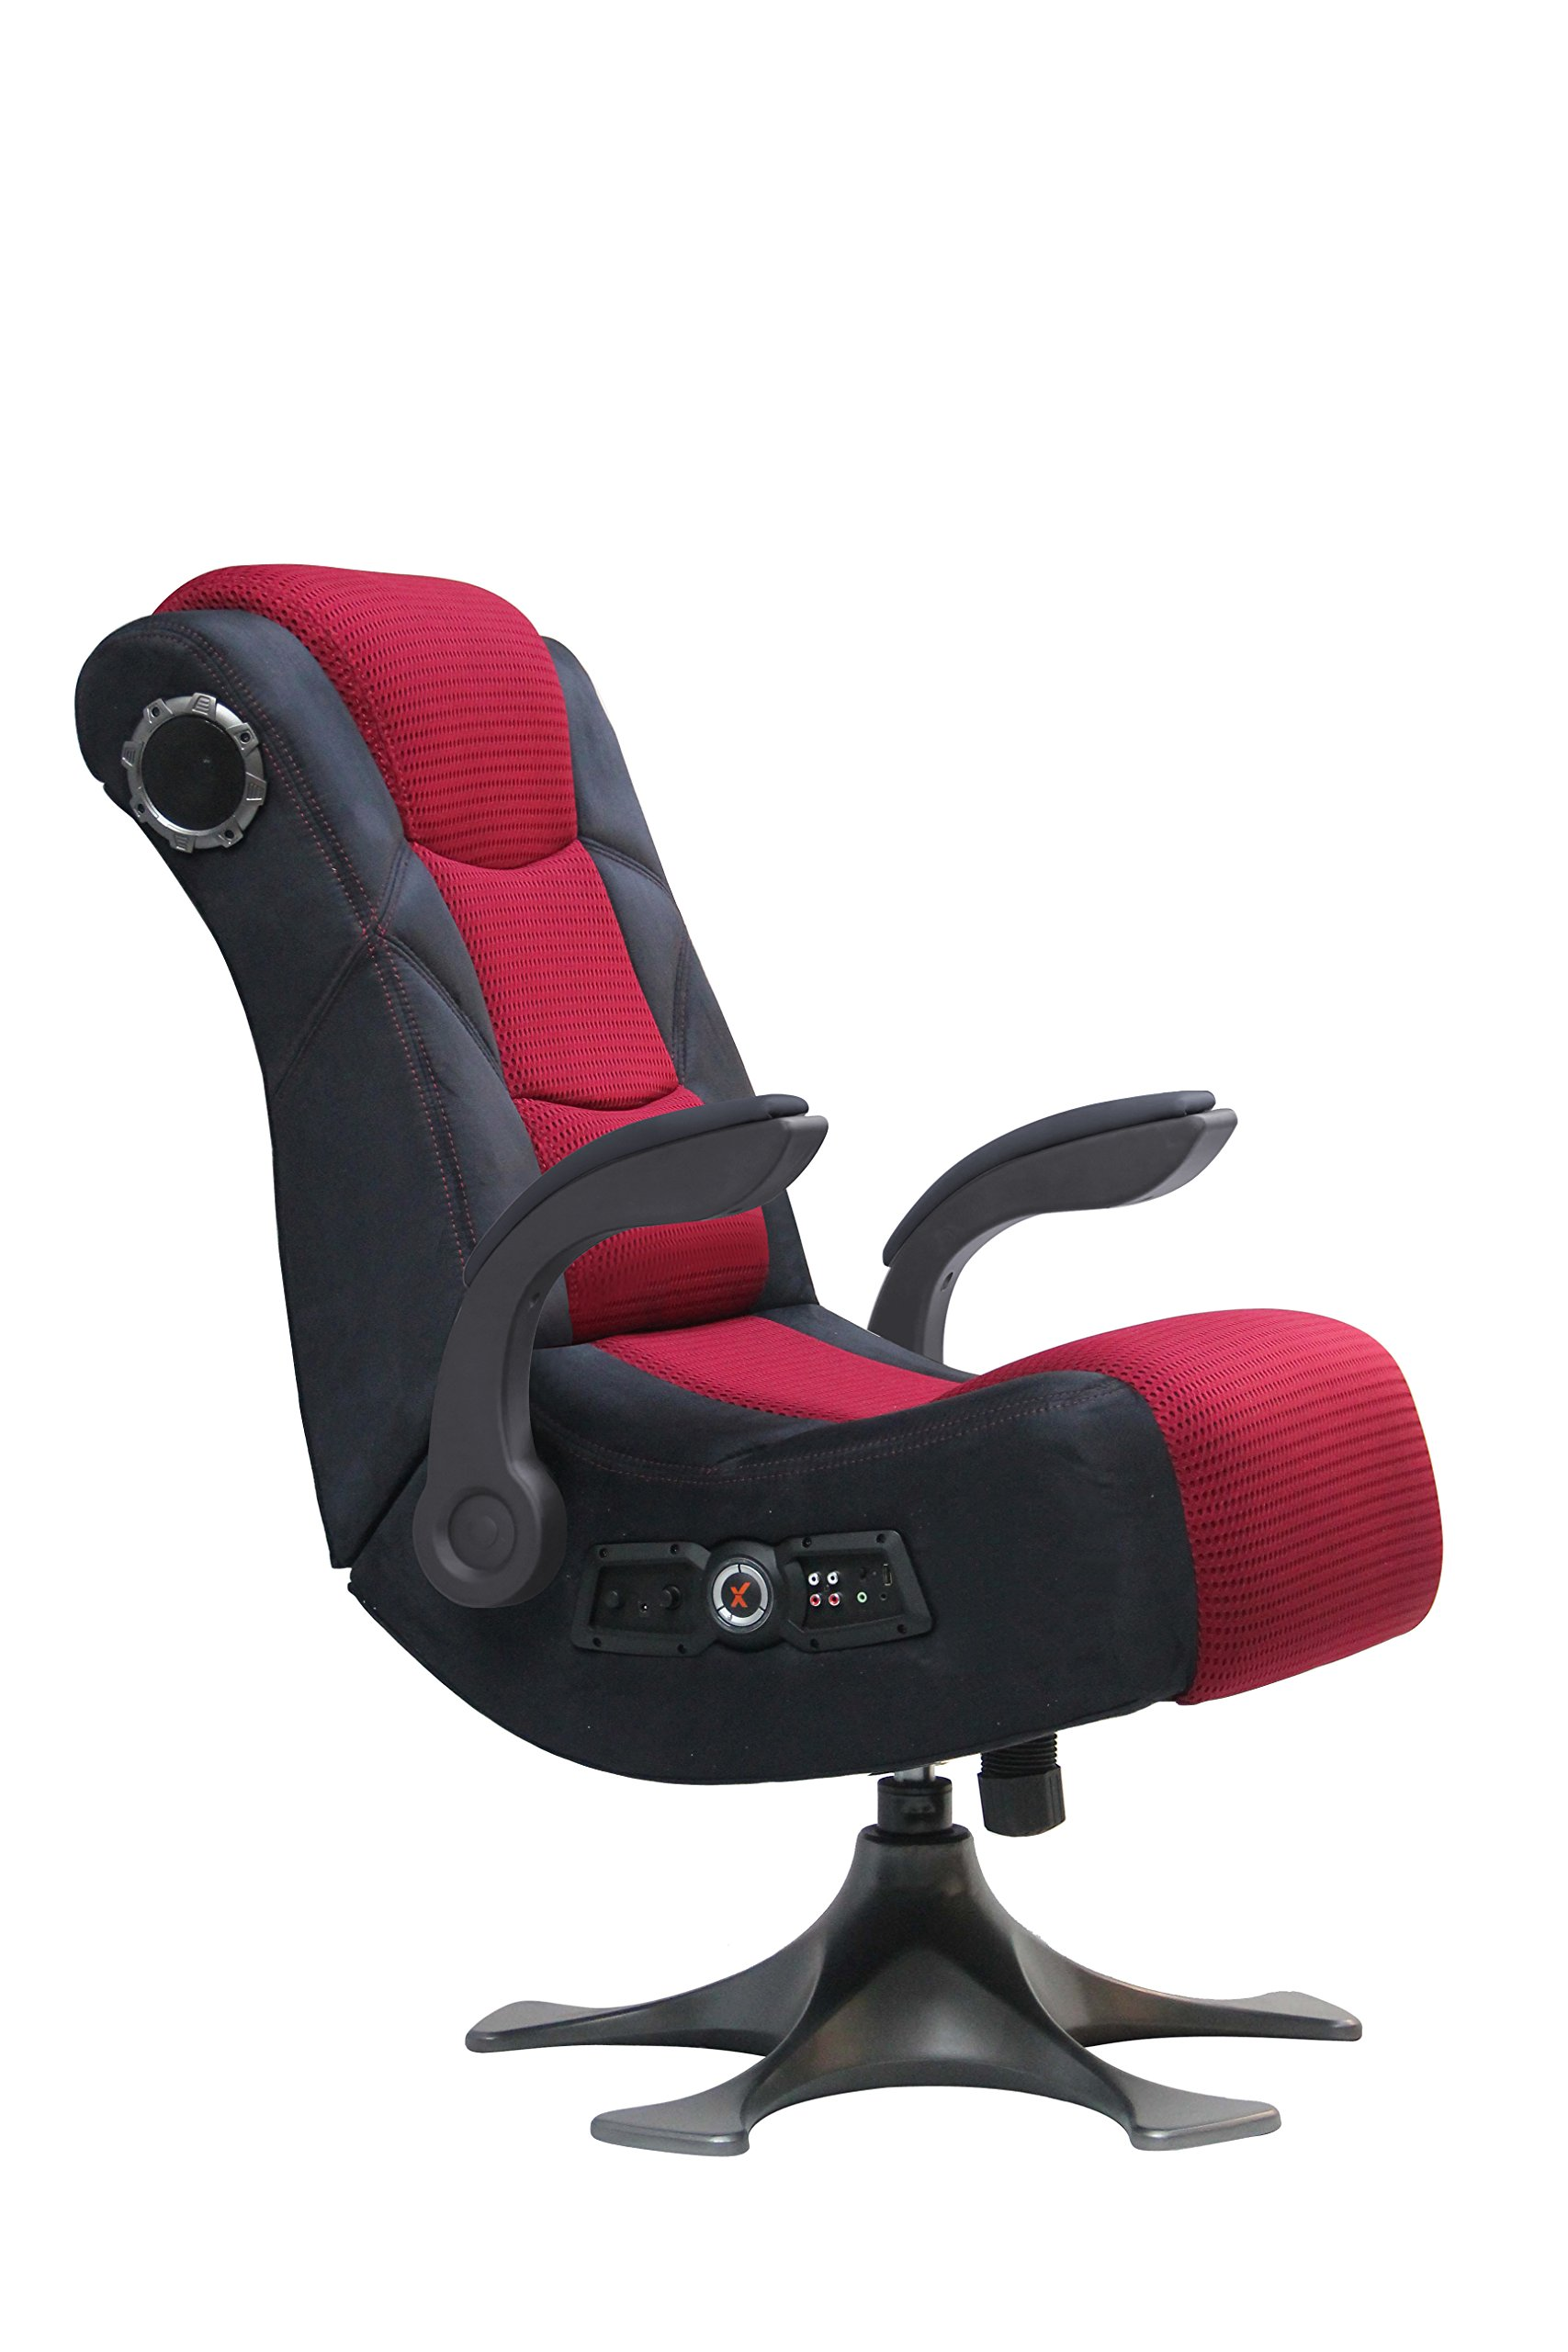 x rocker 5129101 pedestal video gaming chair 2 1 microfiber mesh black red ebay. Black Bedroom Furniture Sets. Home Design Ideas